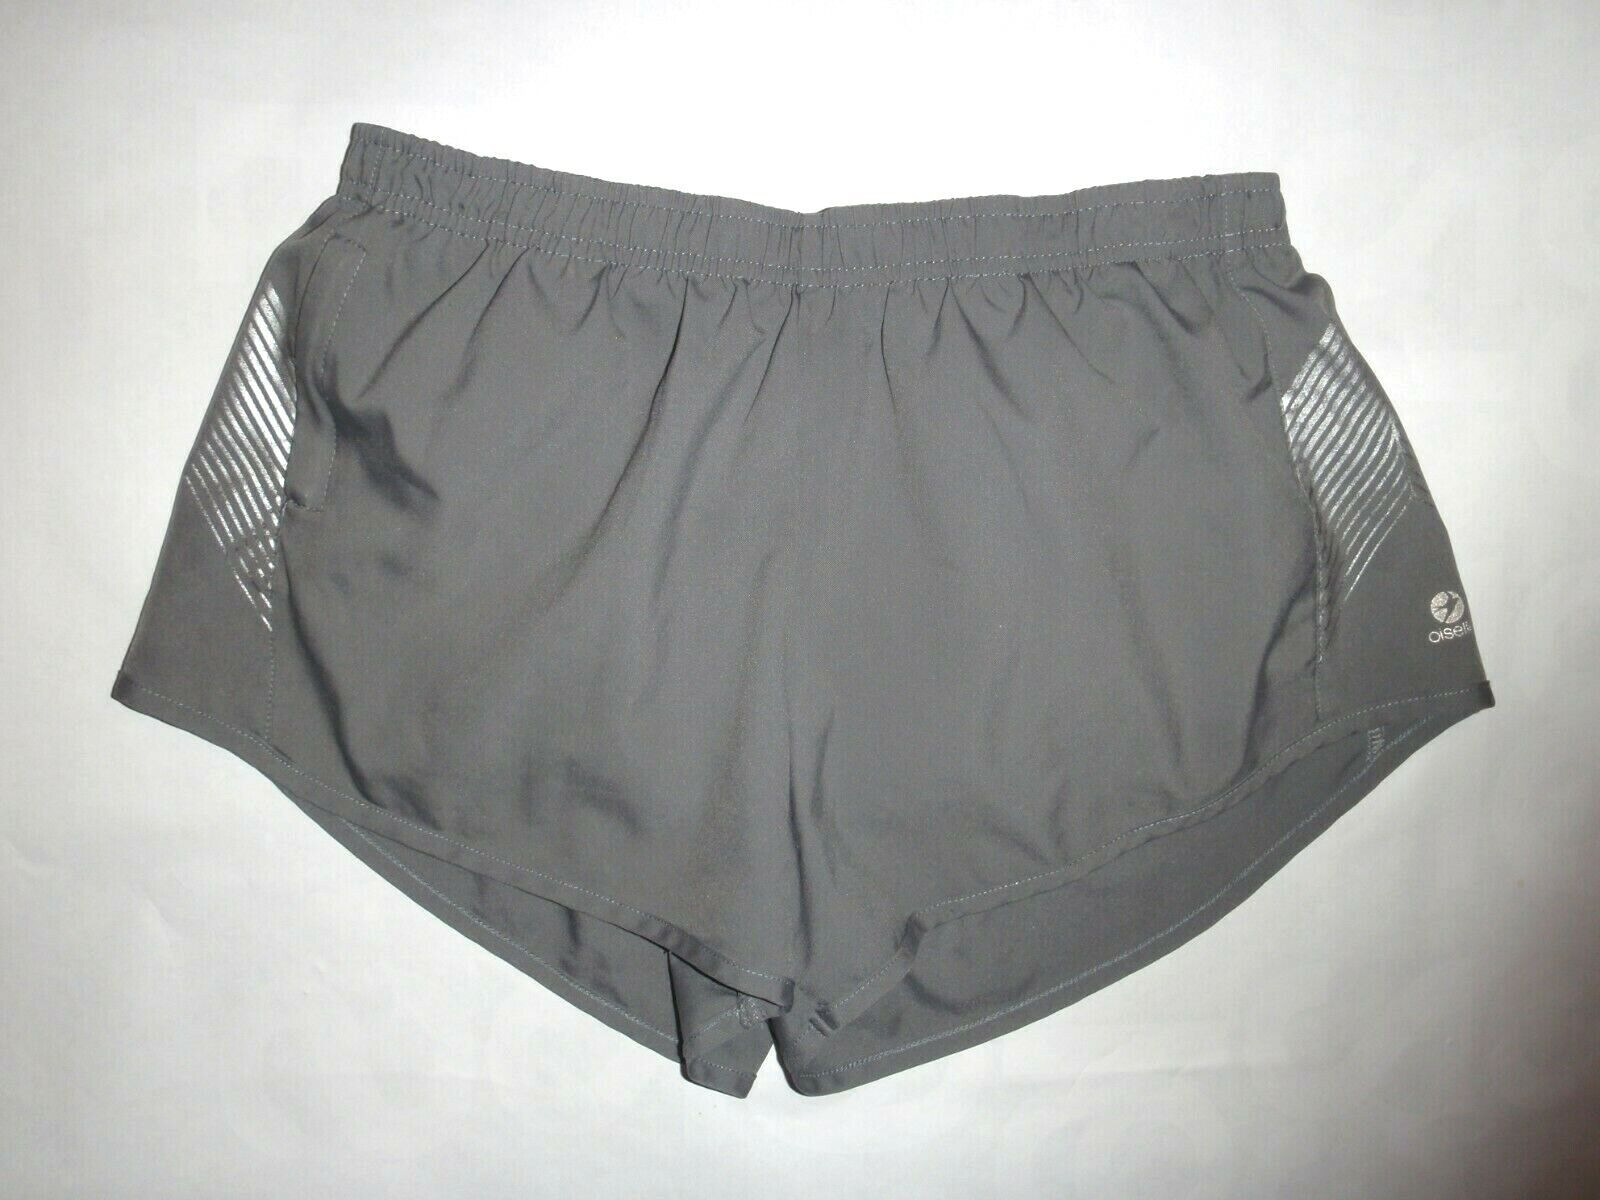 Oiselle women's gray athletic running shorts see measurements